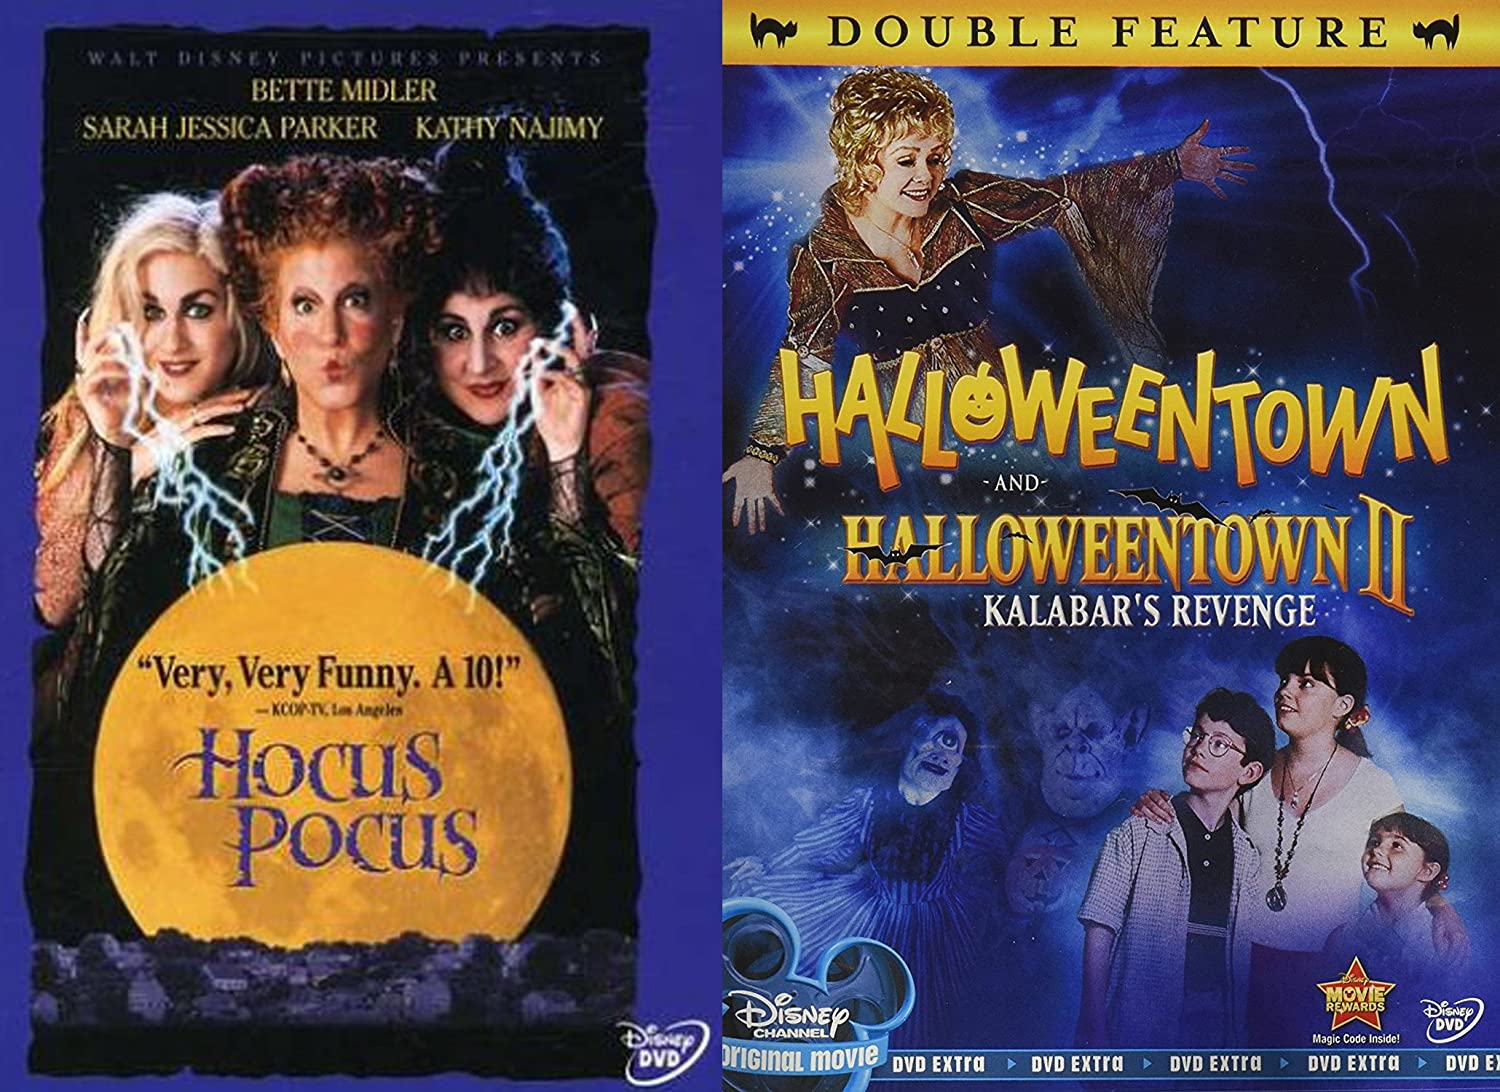 amazoncom disney halloween magic triple feature halloweentown 1 2 hocus pocus creepy witches family fun movies tv